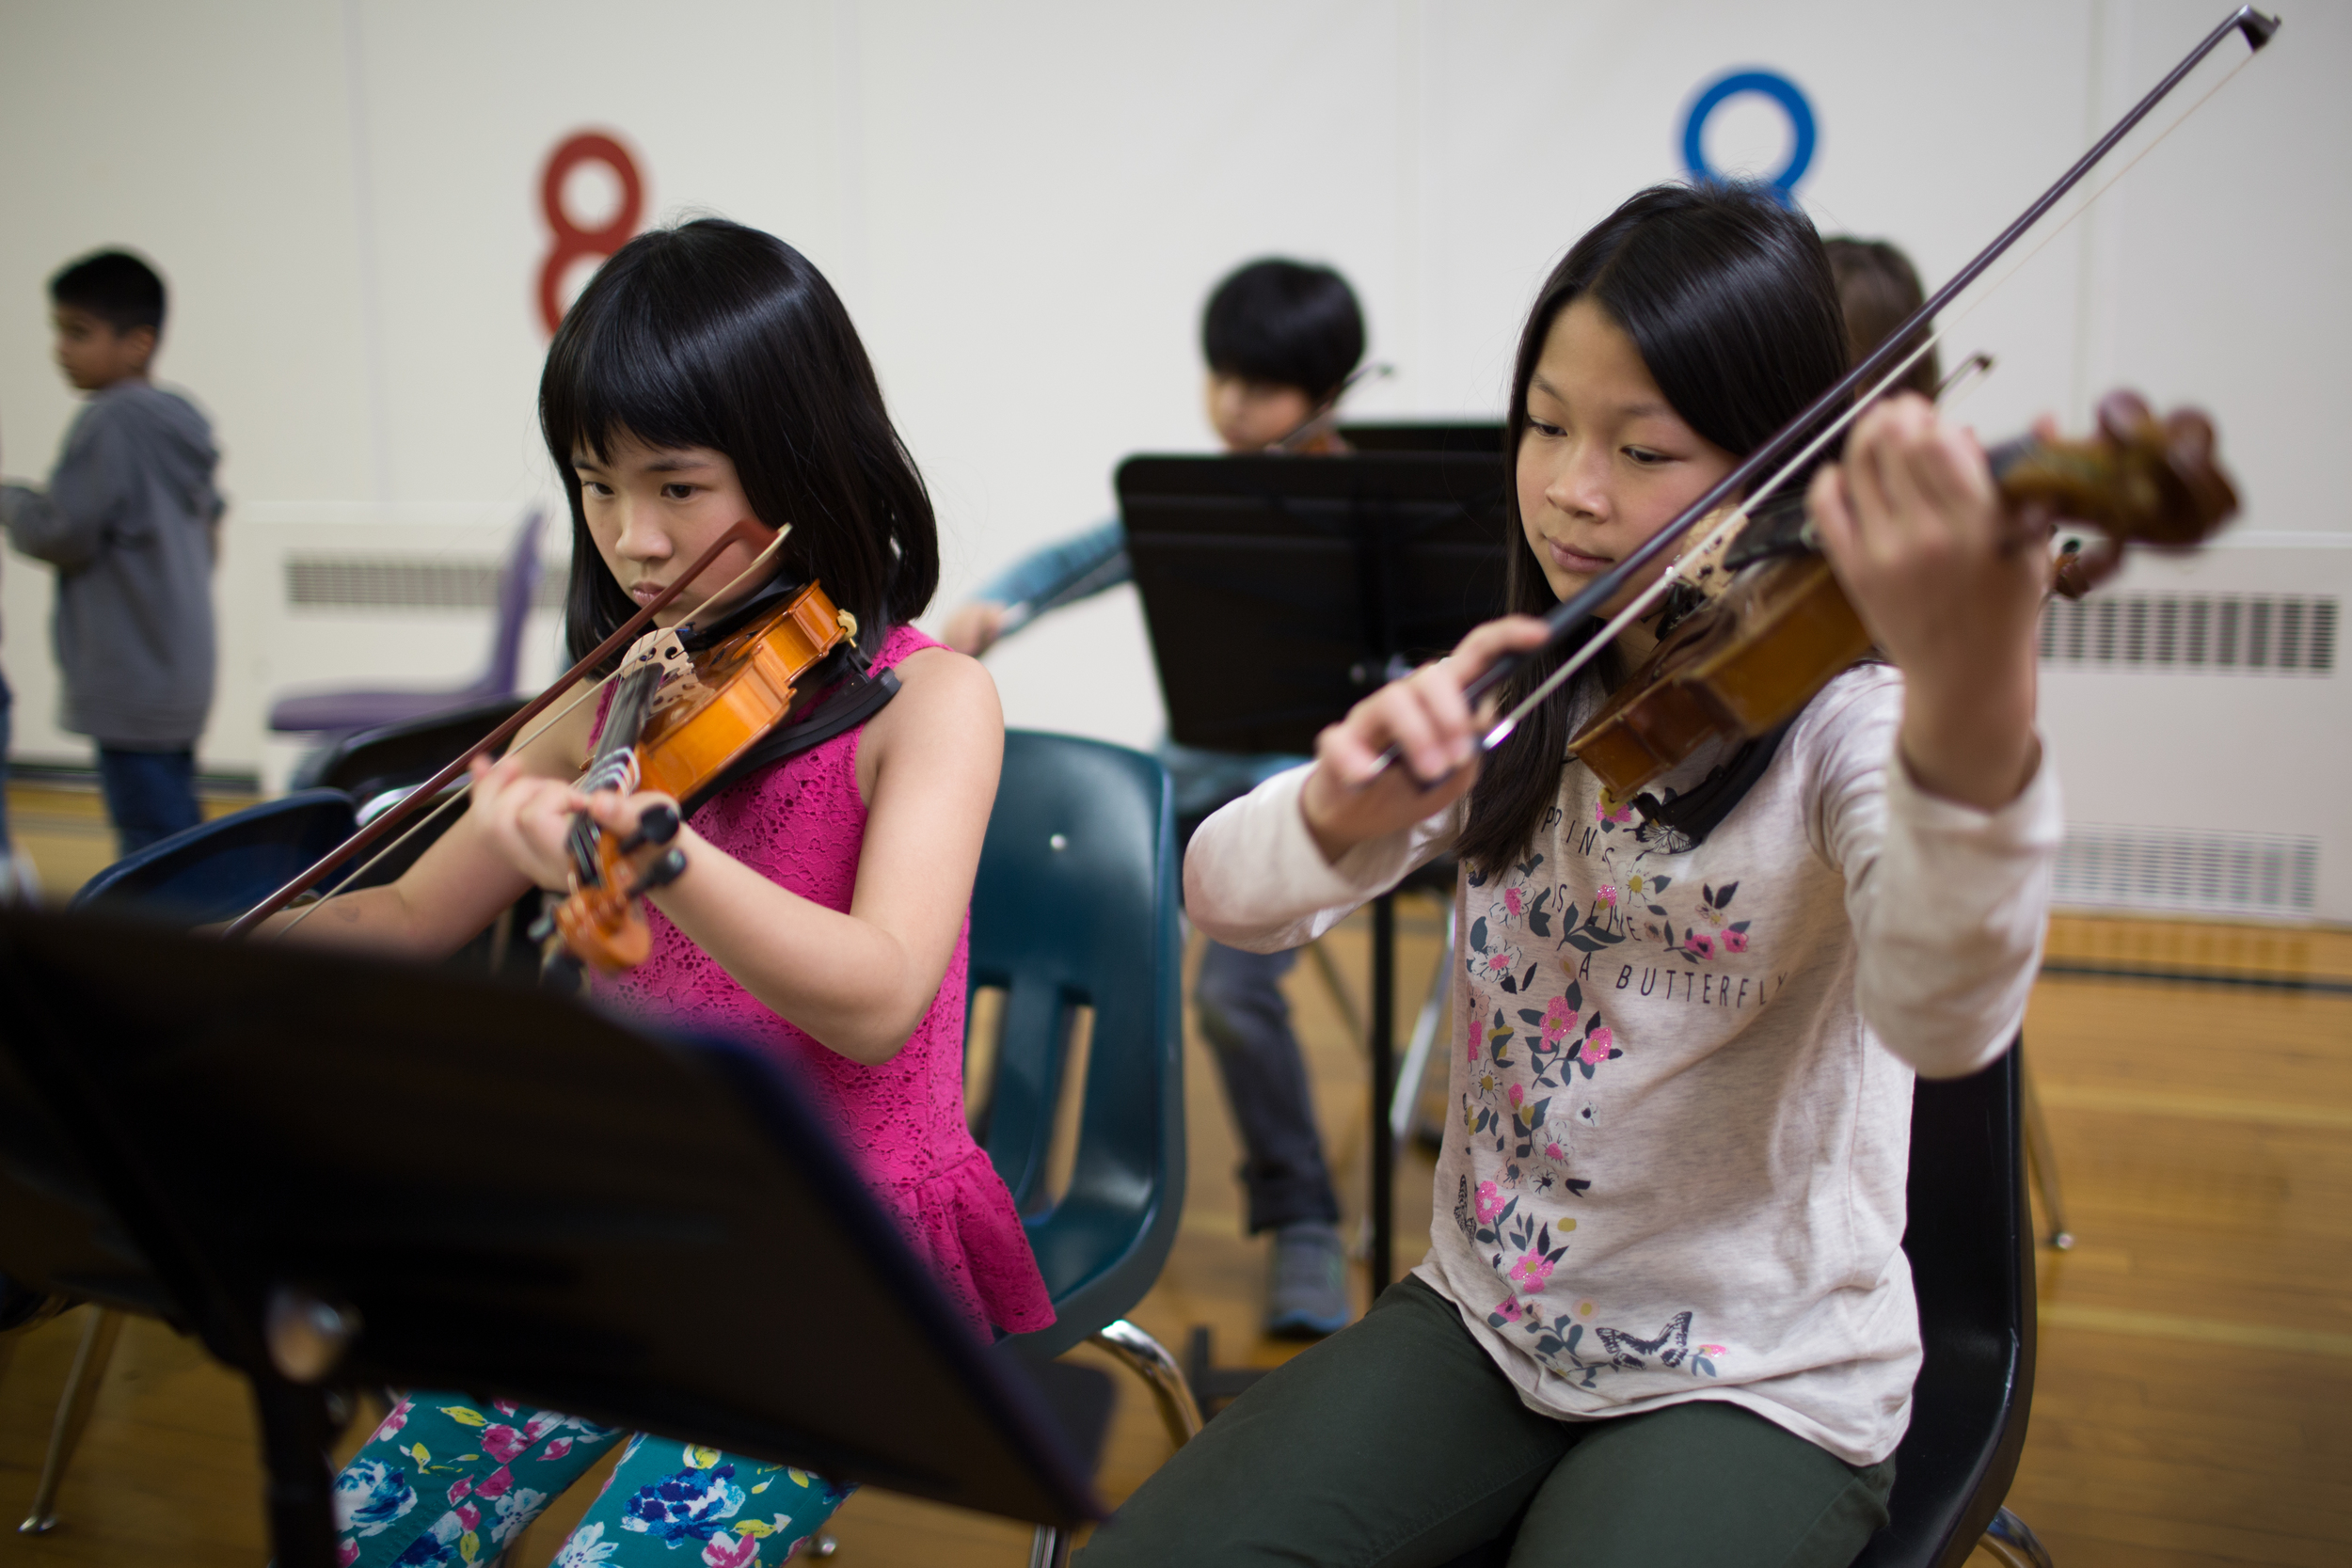 Two members of Team Oistrakh, rehearsing earlier this year.